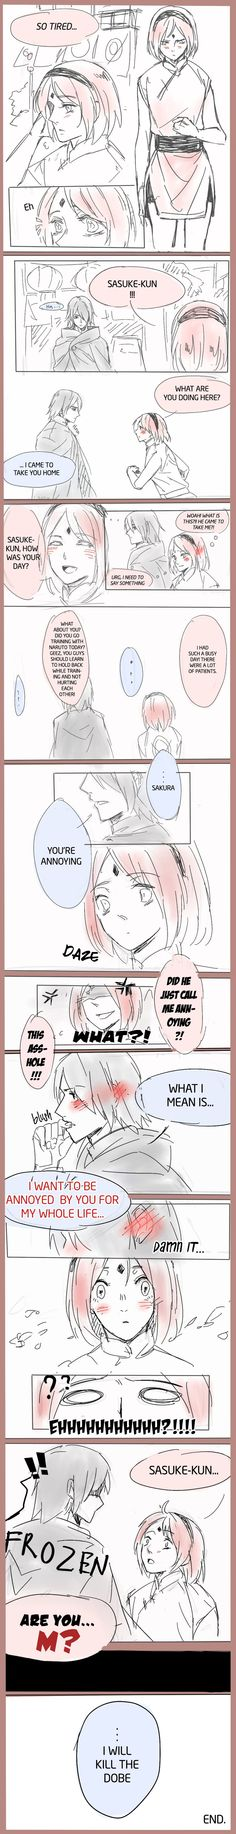 [SasuSaku] Short Comis by i-Shinnie.deviantart.com on @DeviantArt